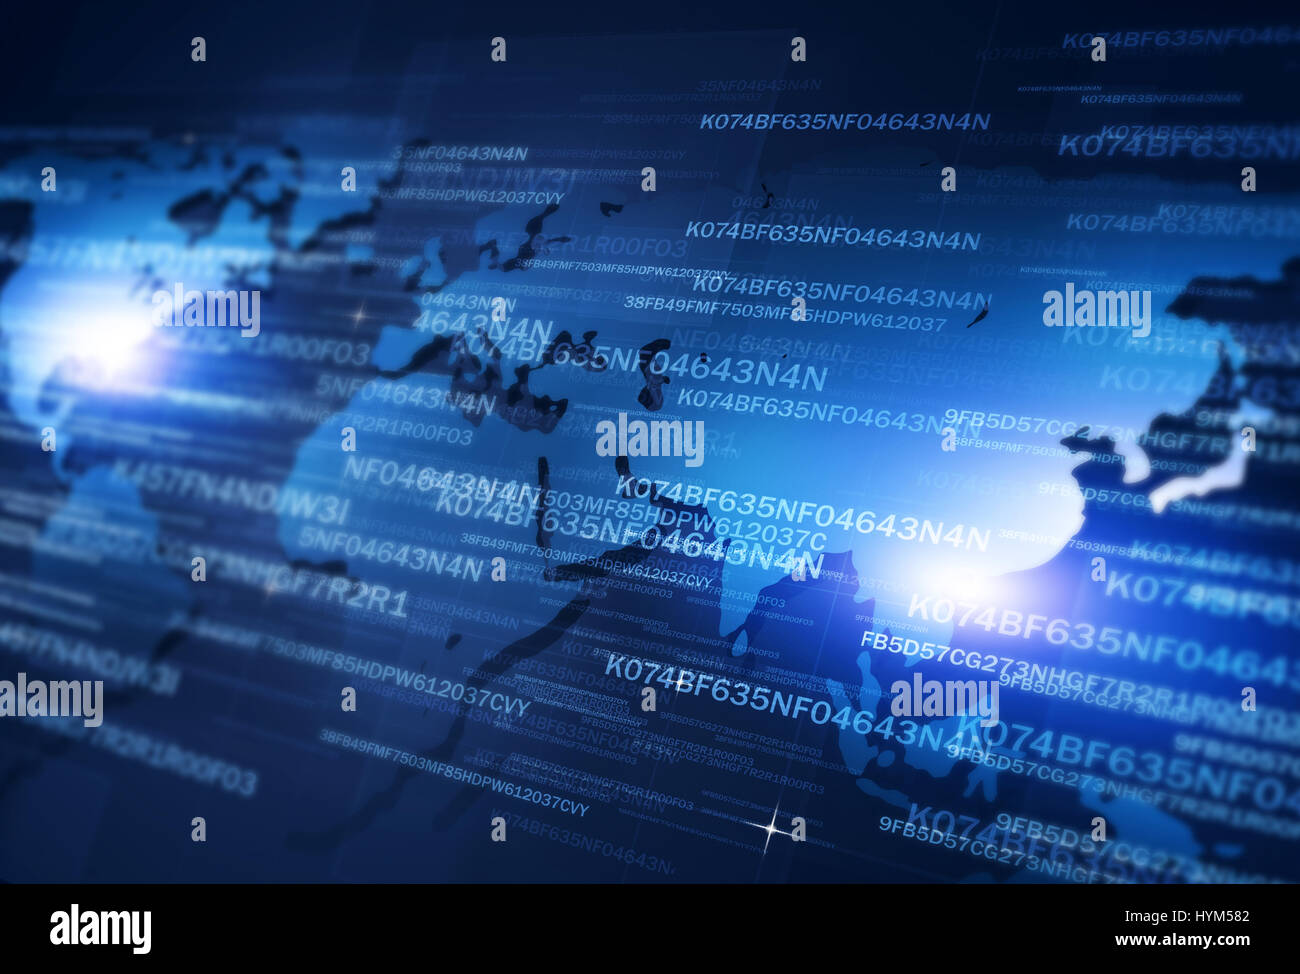 digital coding concept technology network security blue background - Stock Image